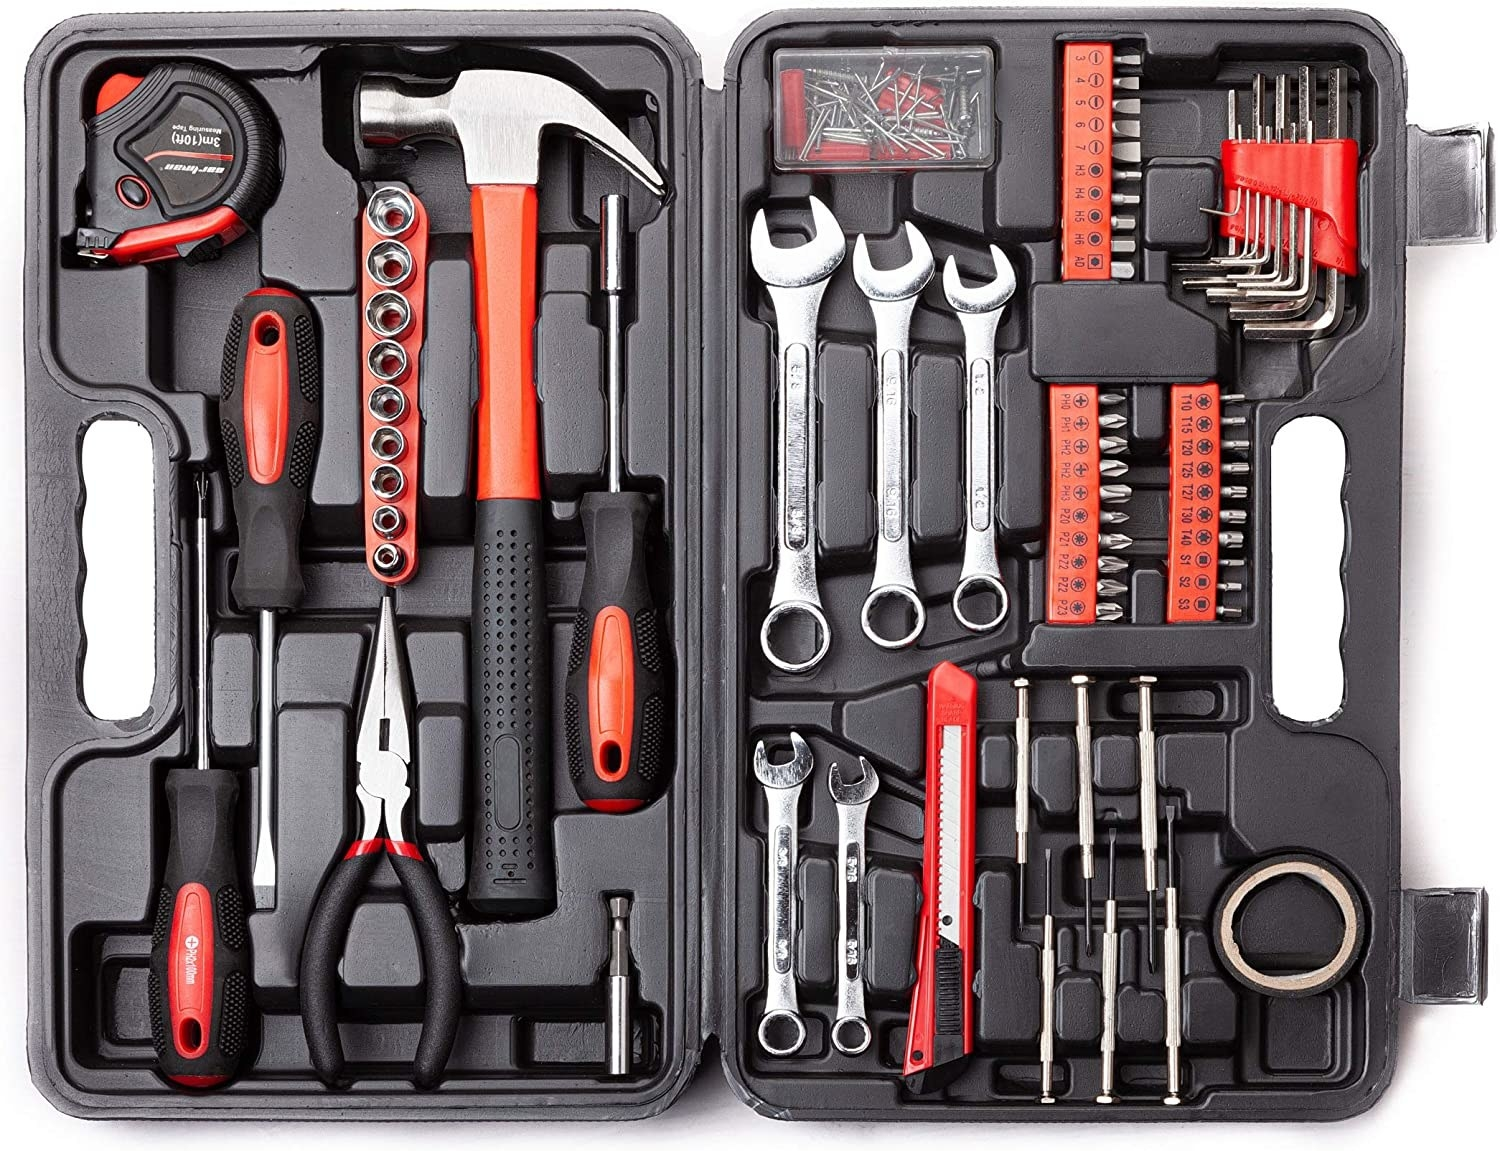 a black tool kit with screwdrivers, pliers, hammer, wrenches, drill bits, and more